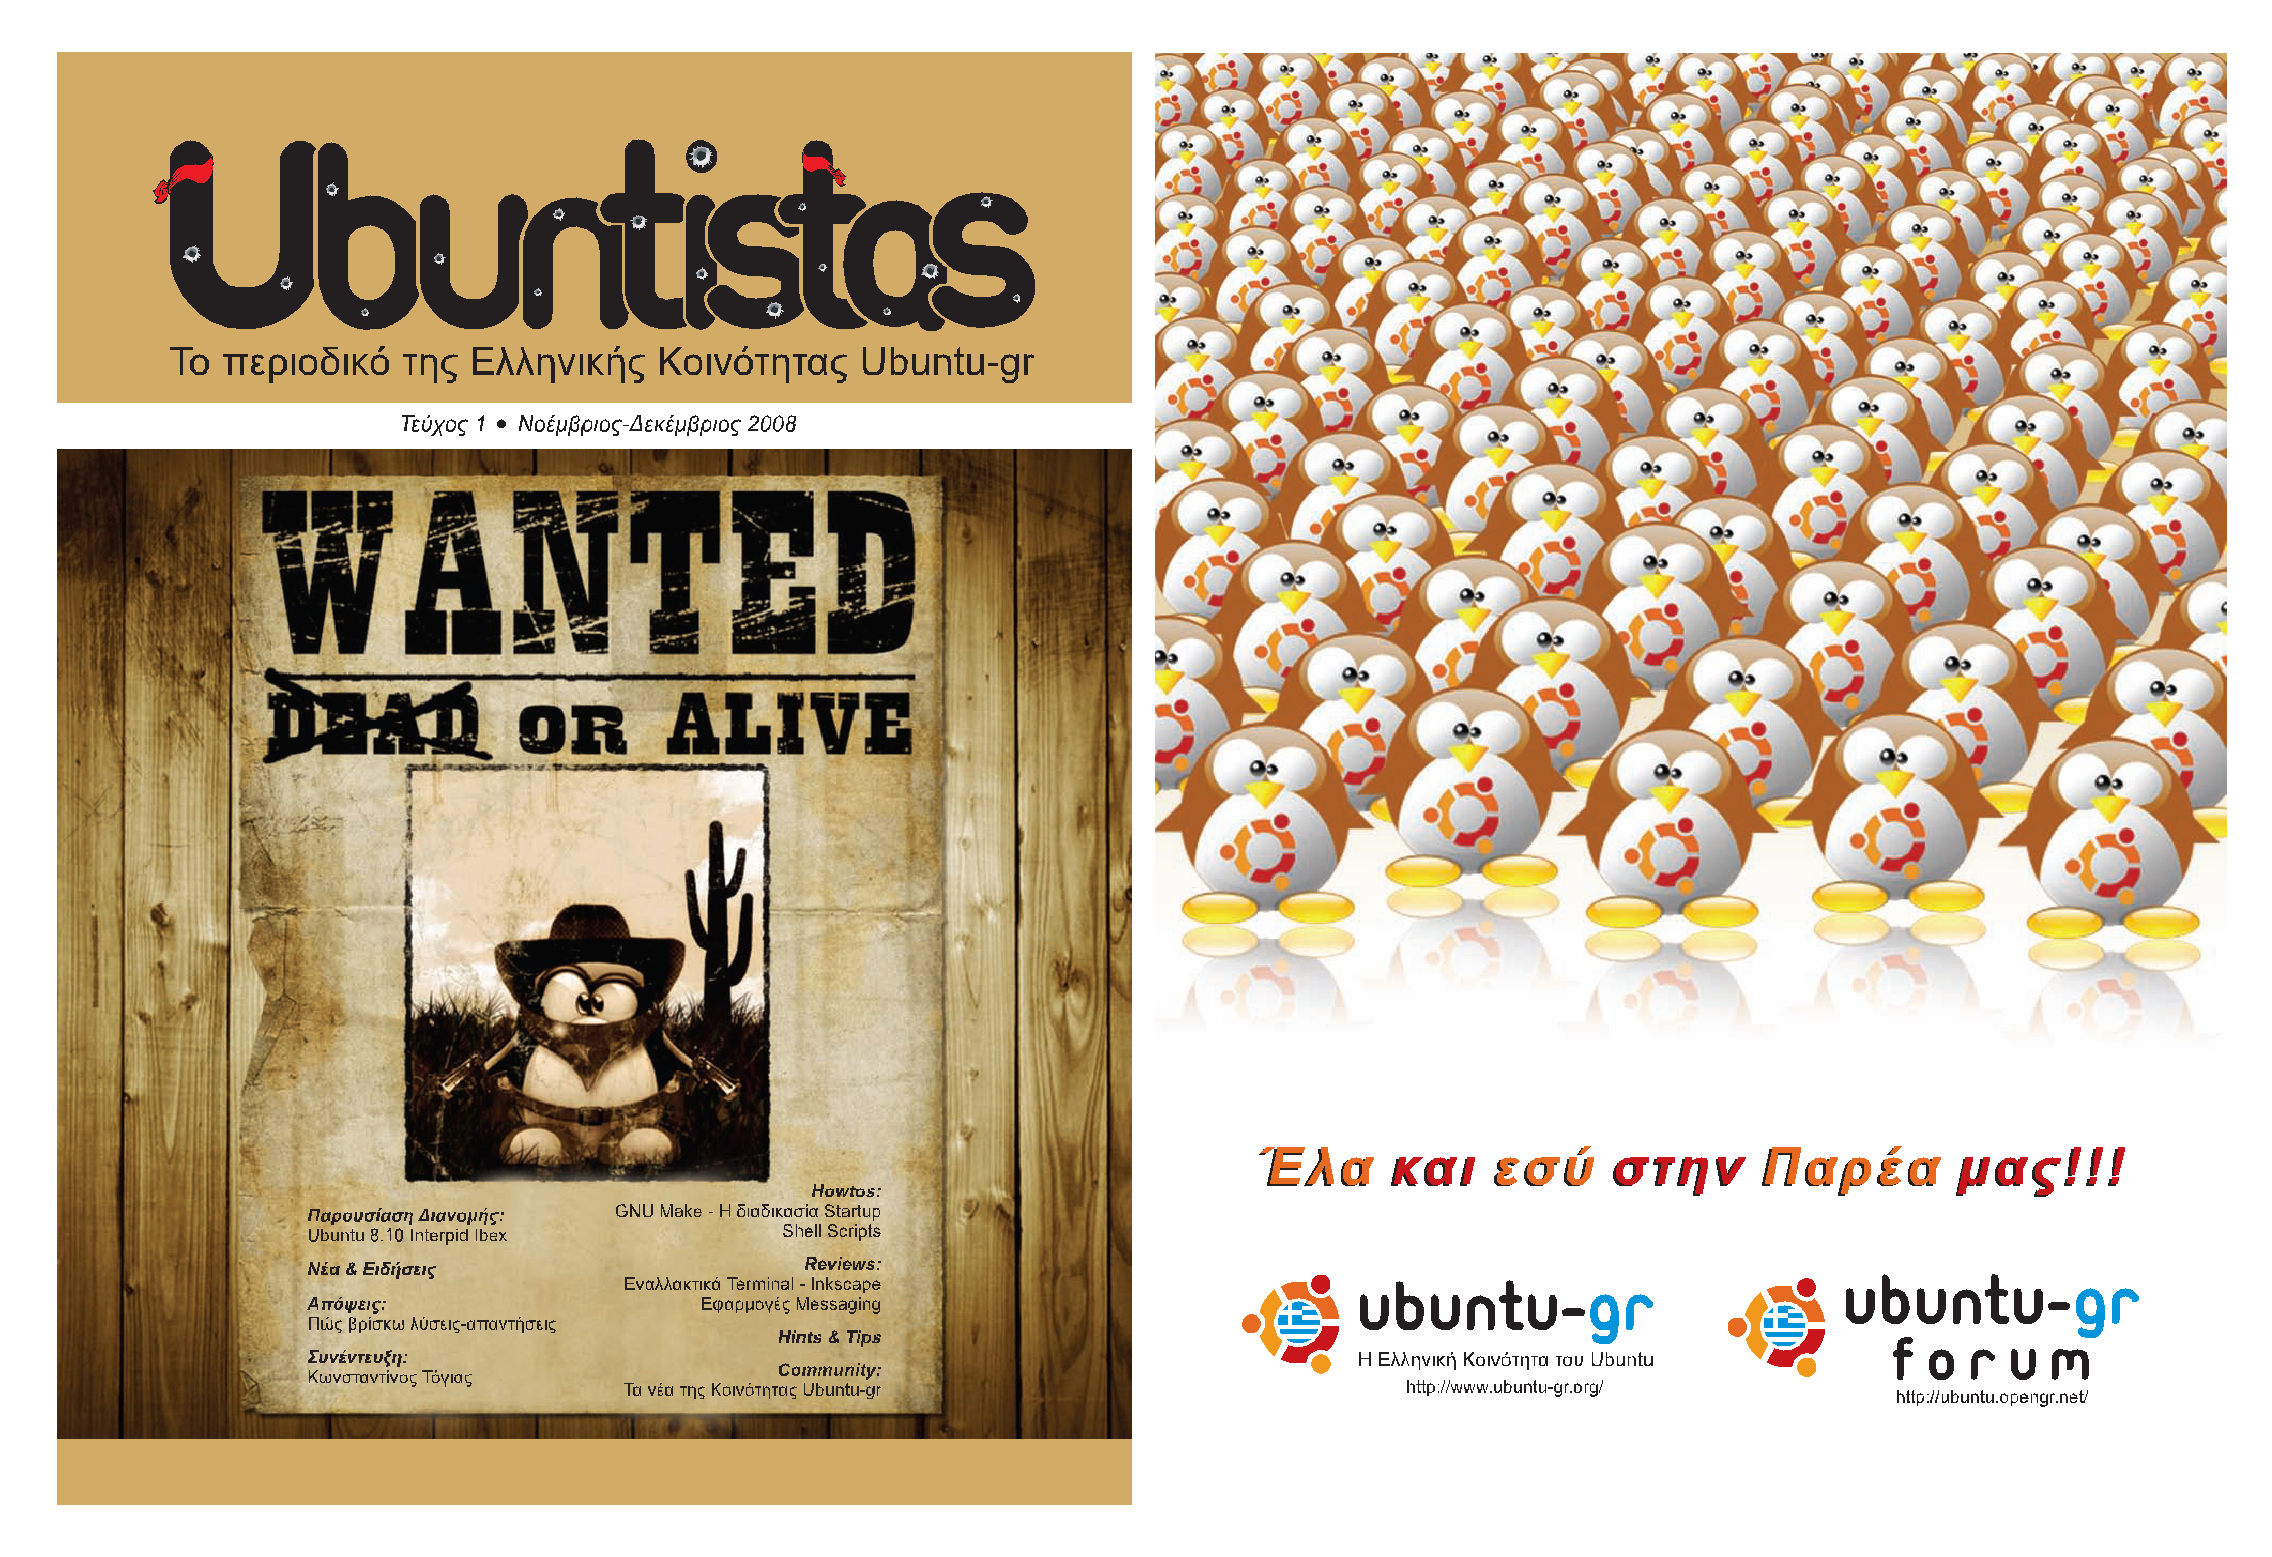 ubuntistas_issue_1_oktober-november_2008